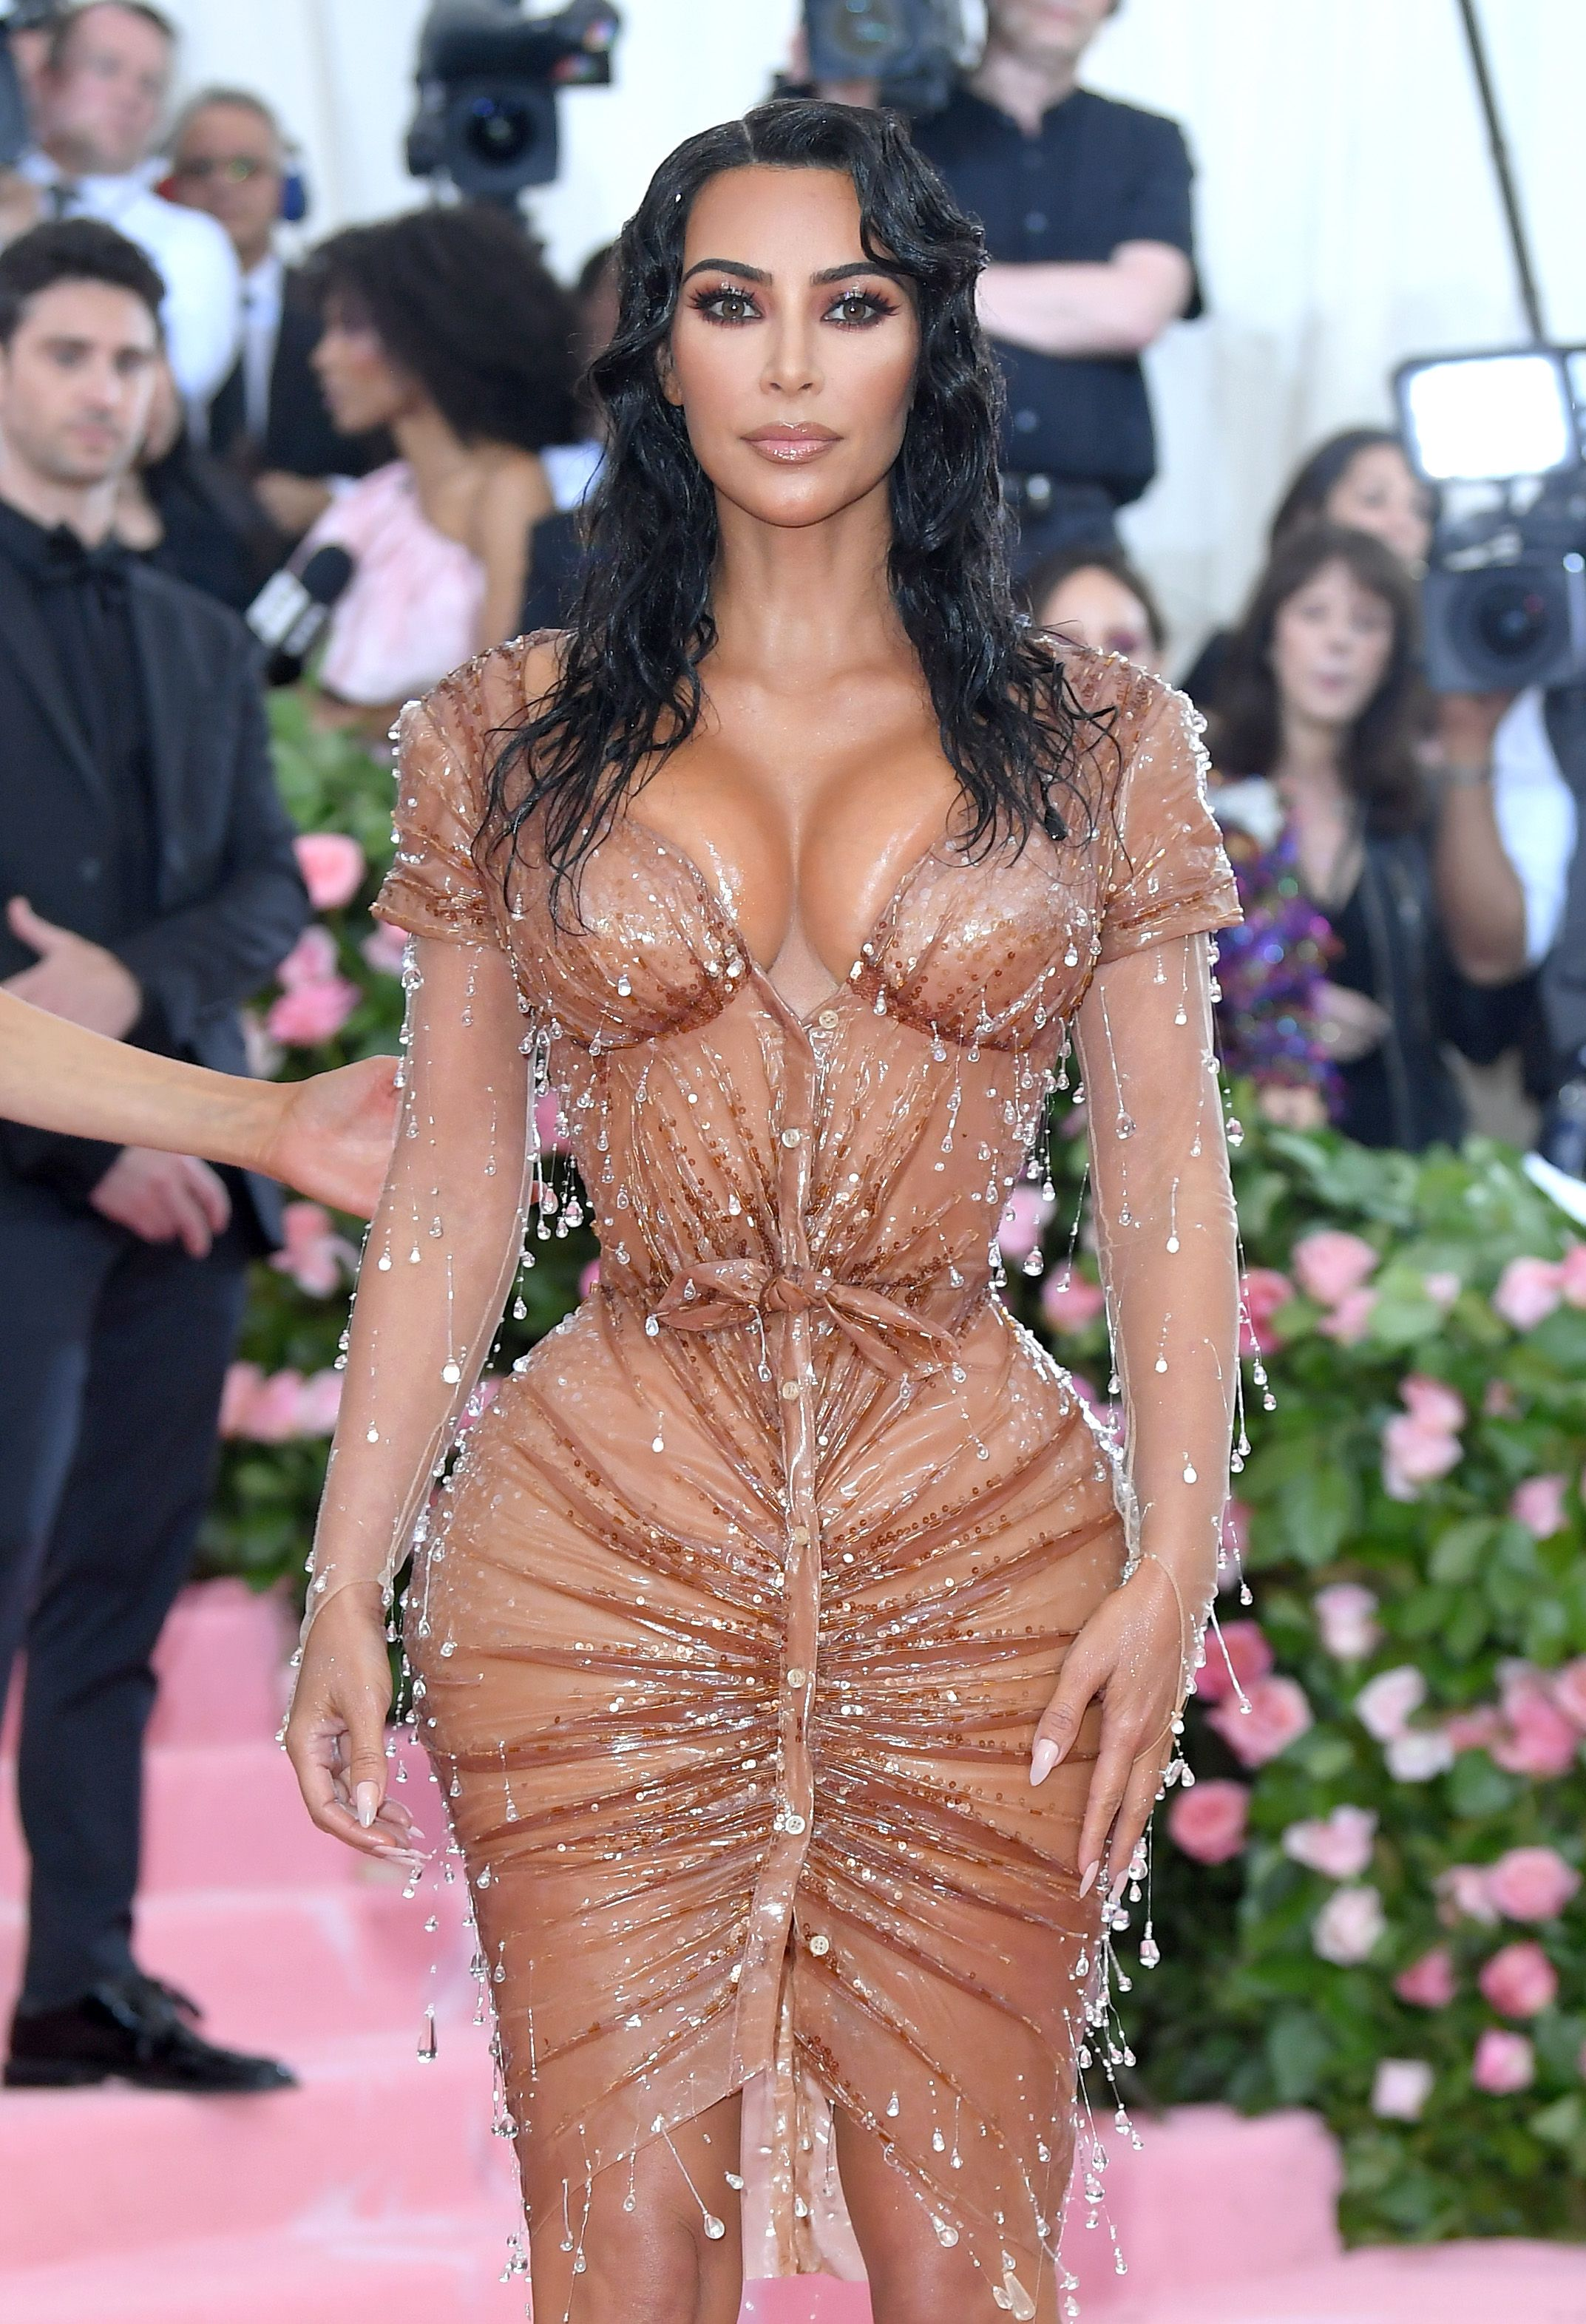 Kim Kardashian Says She Covers Psoriasis With KKW Beauty Body Makeup In Instagram Video